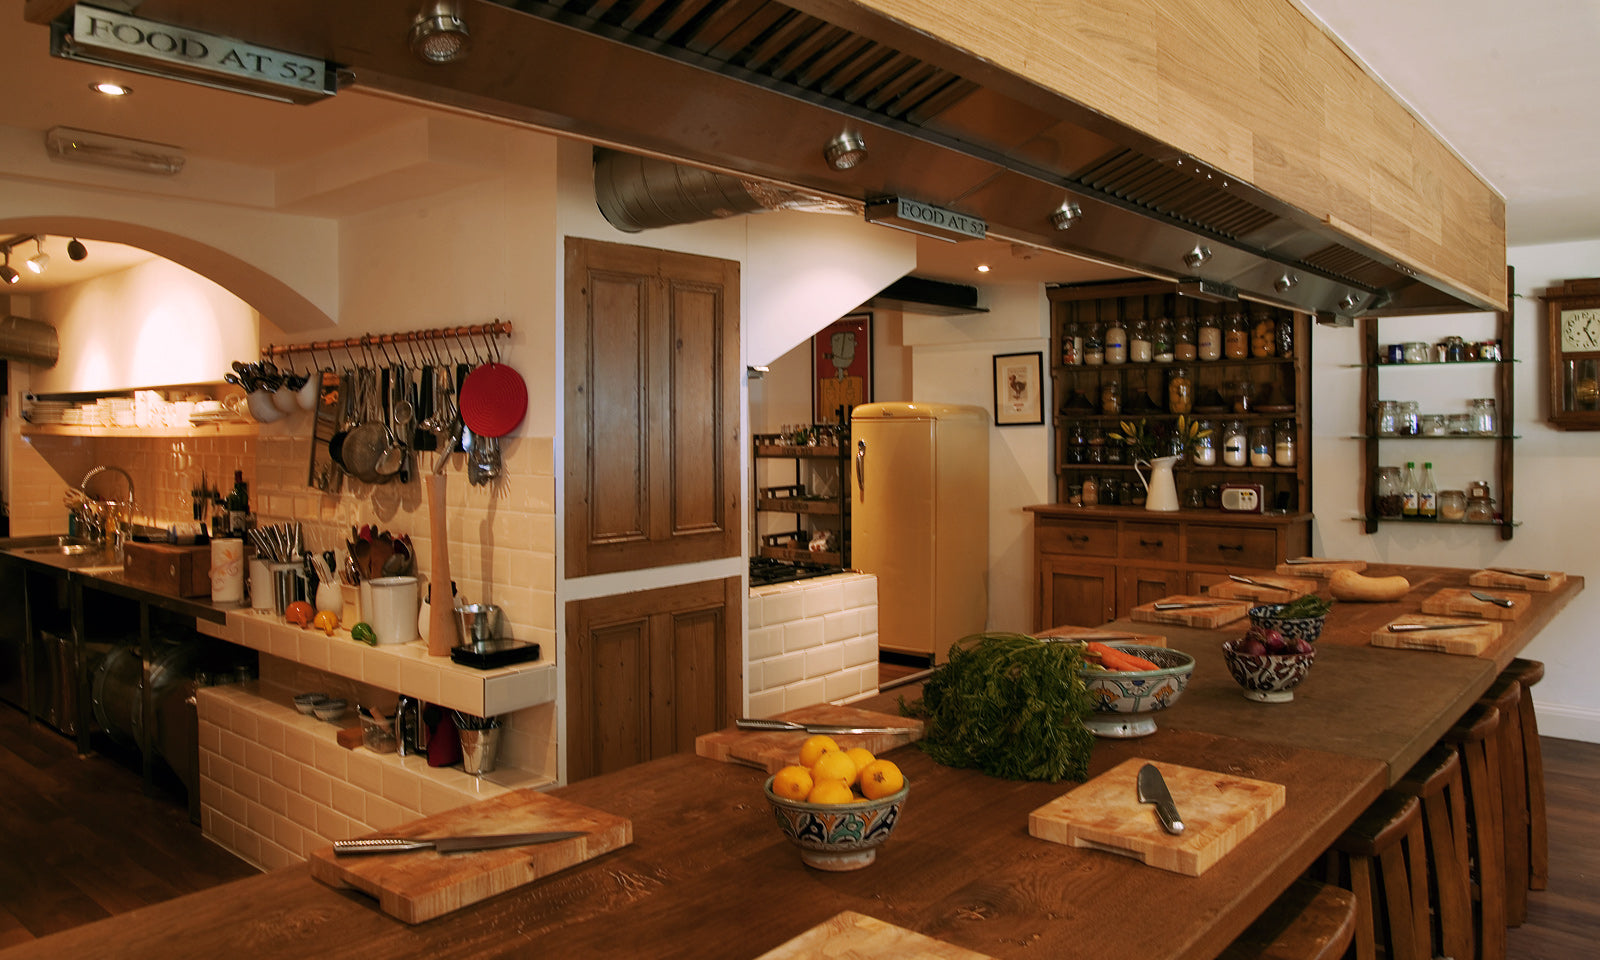 The rustic oak banquet table in our kitchen with a view of the pantry and scullery.